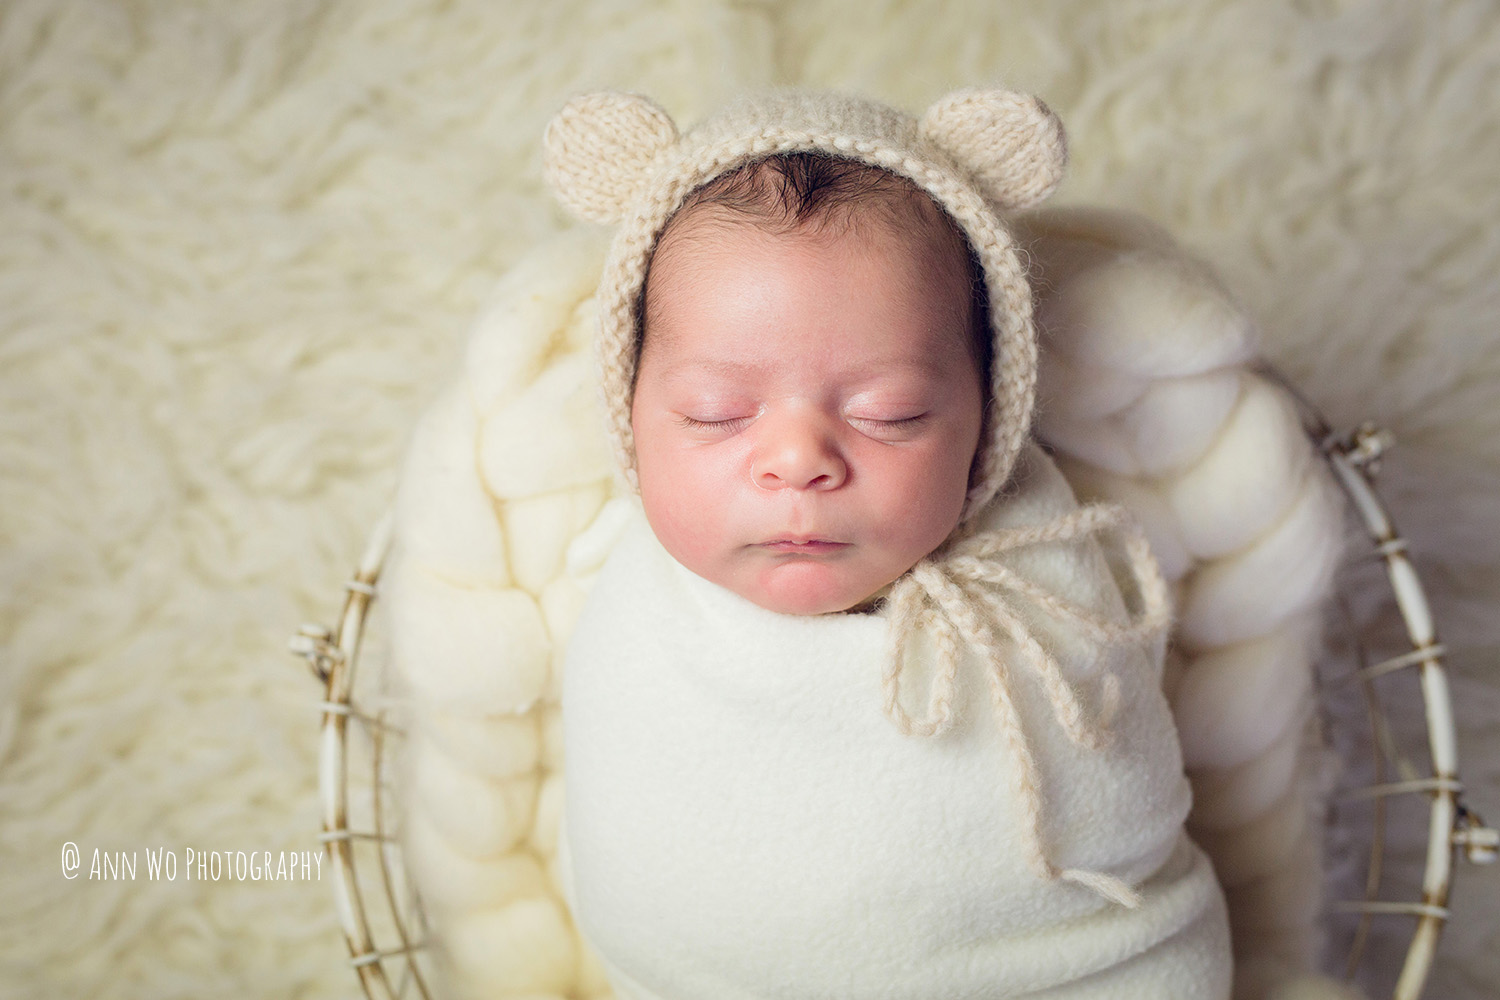 Newborn photography - baby wrapped in a wire basket wearing bear hat - Ann Wo - London